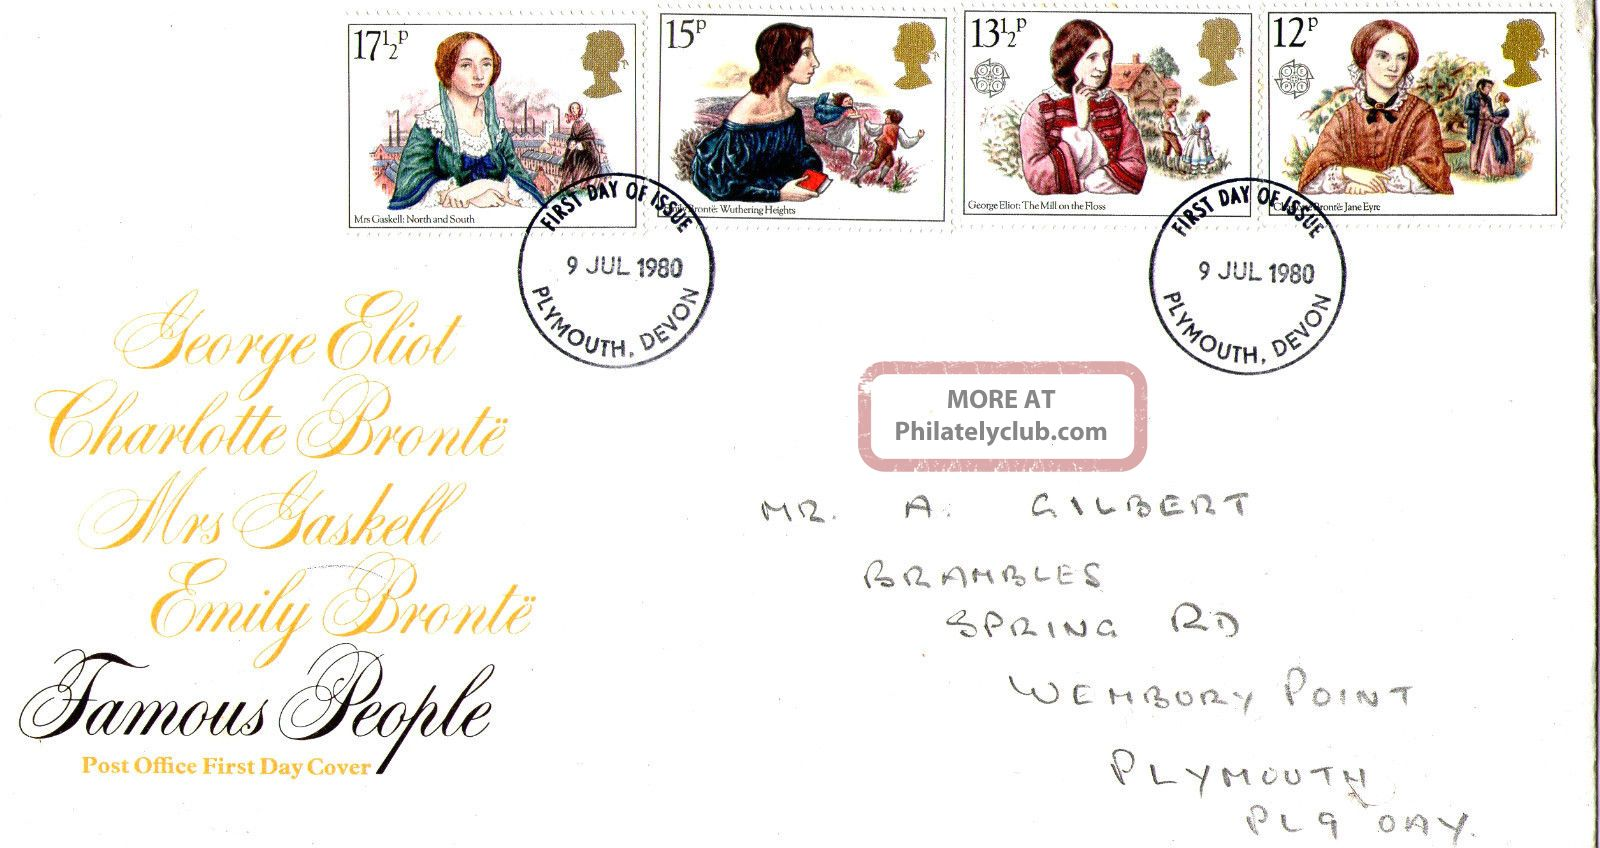 9 July 1980 Famous People Post Office First Day Cover Plymouth Fdi Topical Stamps photo